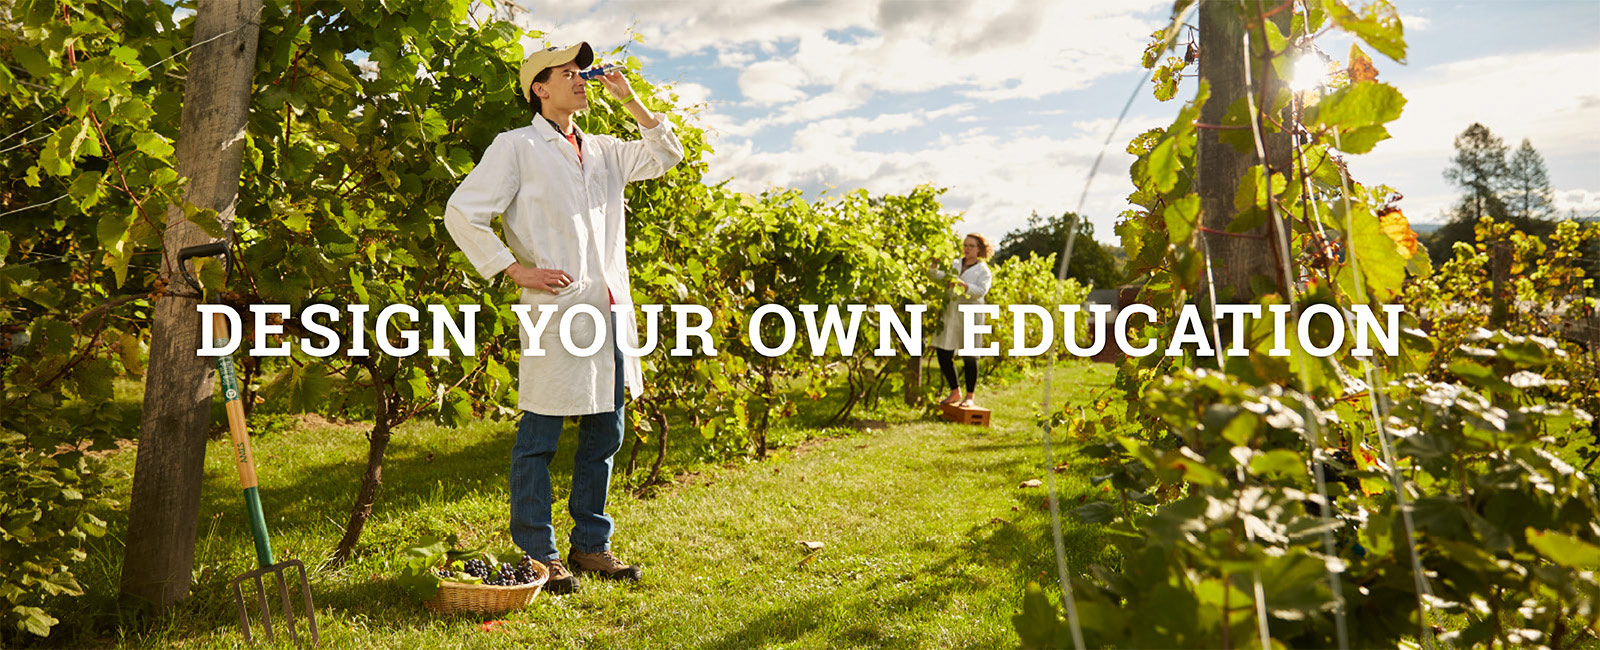 Design Your Own Education